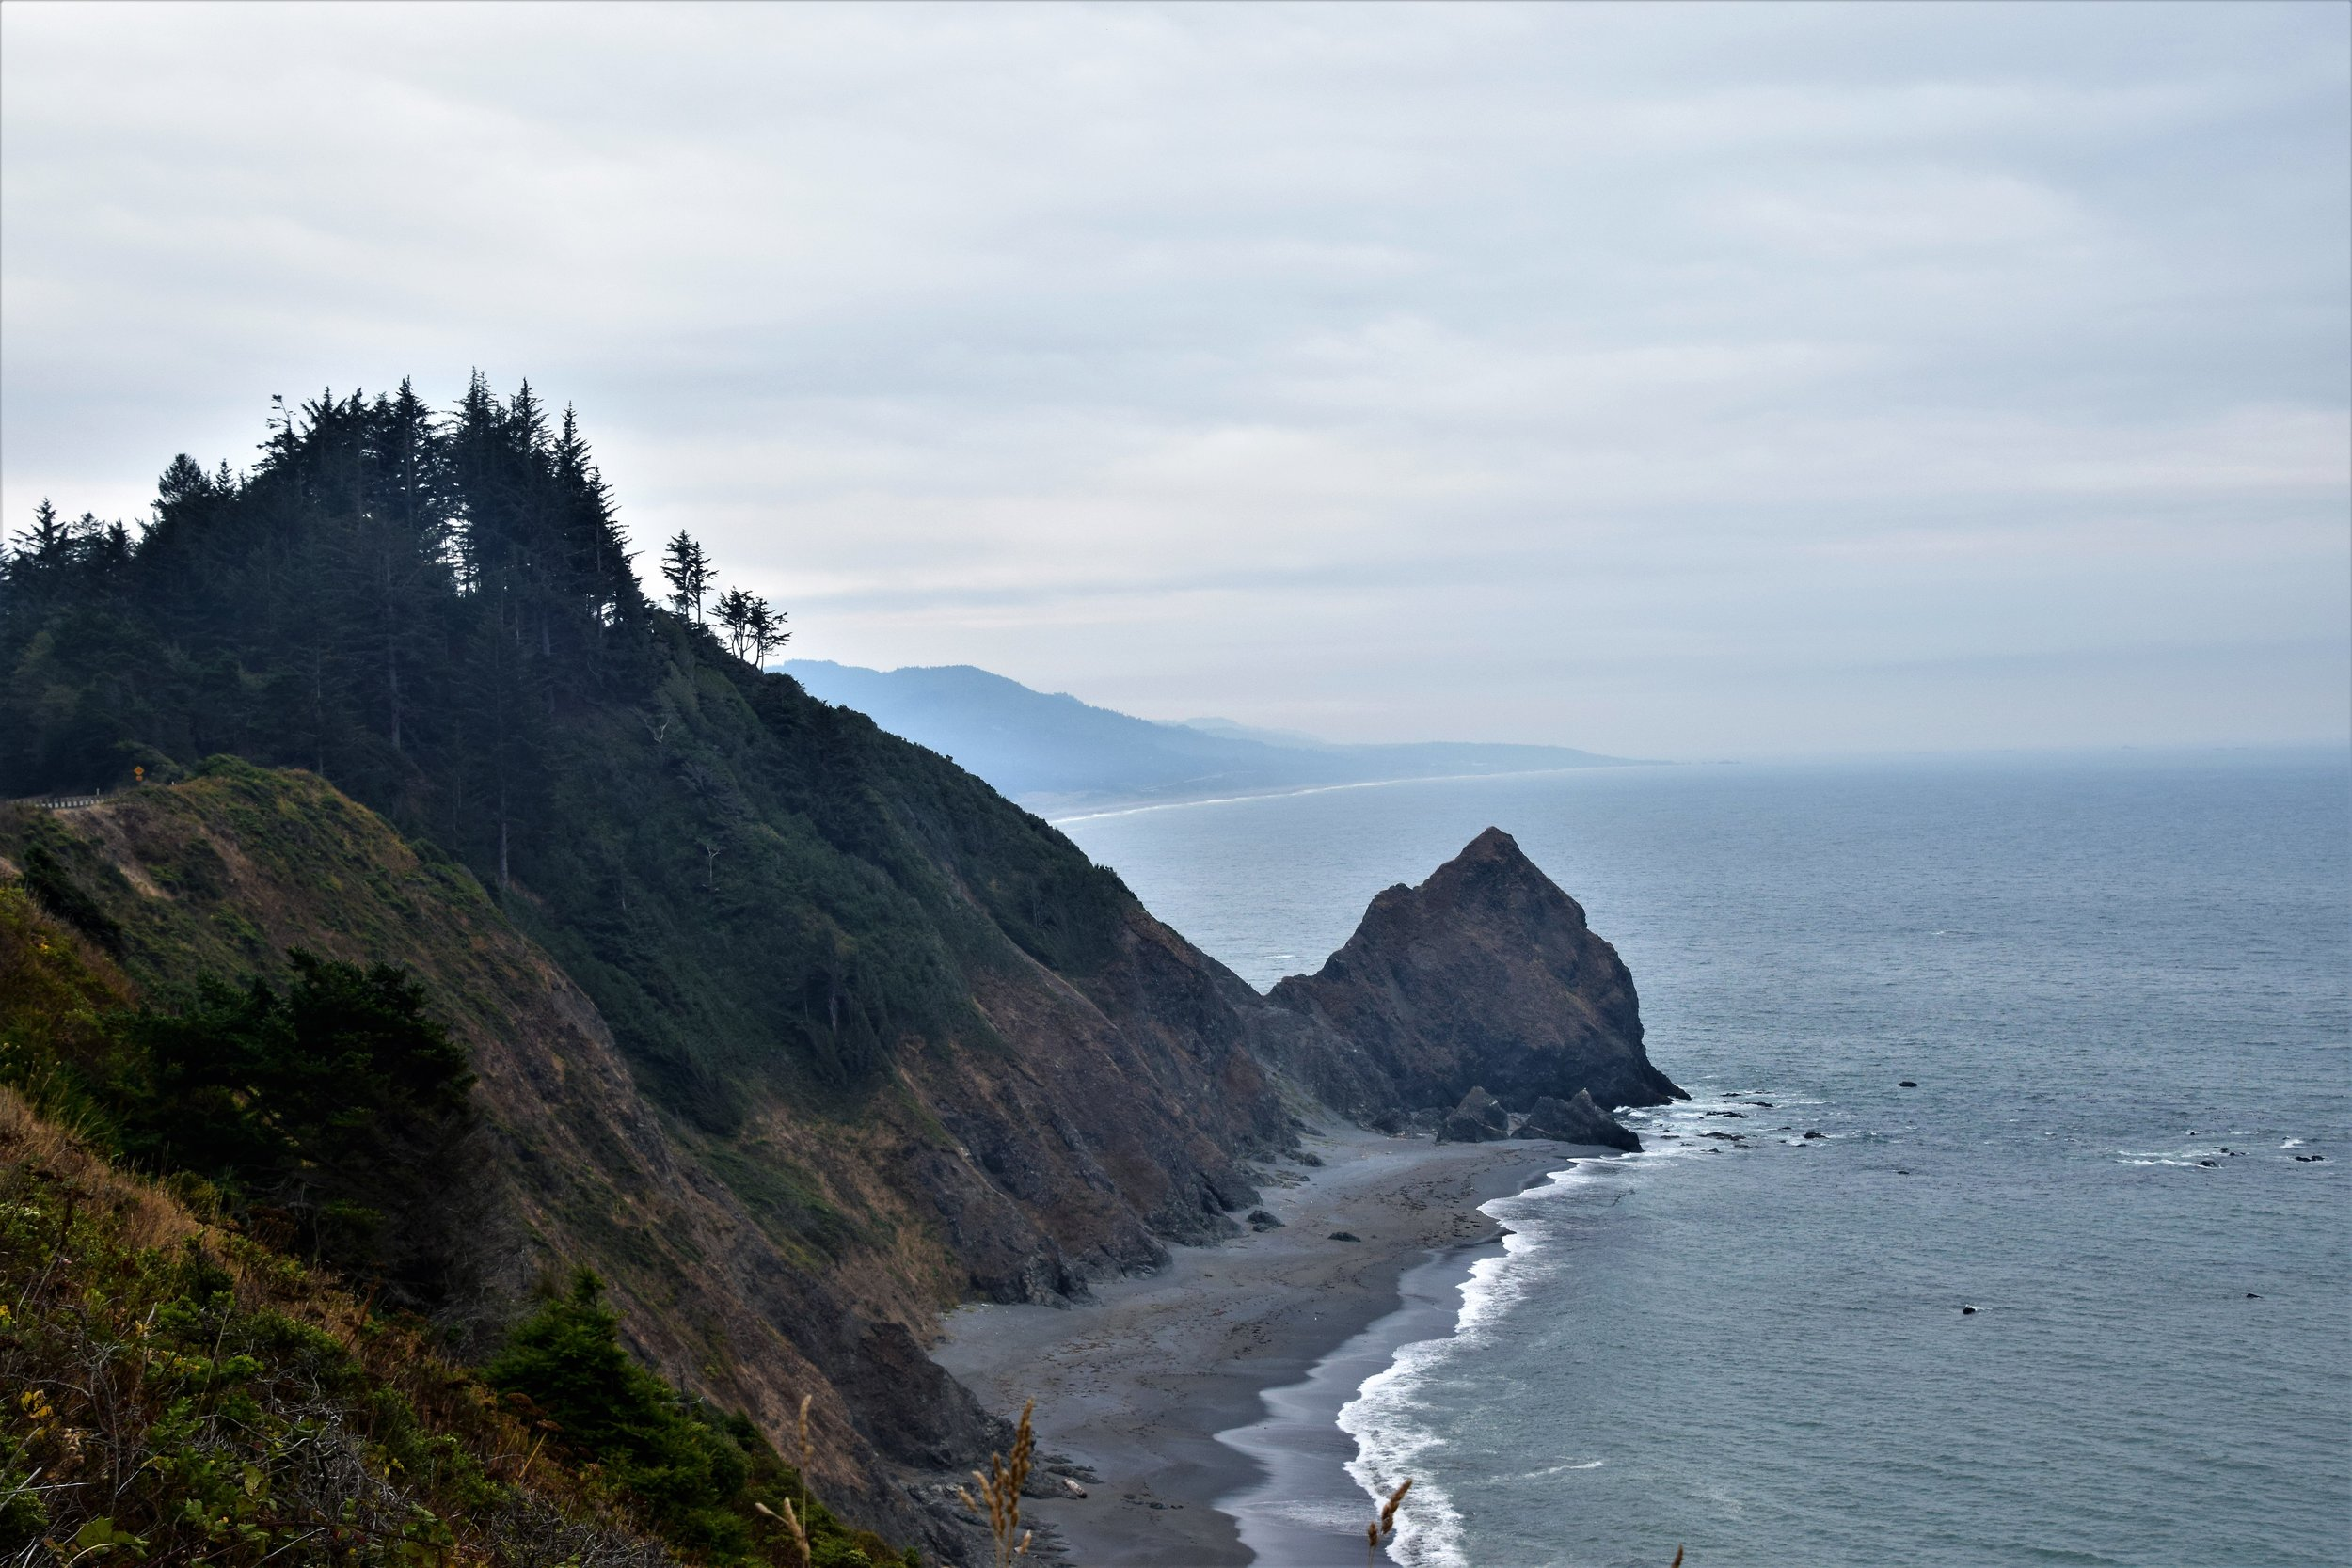 Oregon Coast, HWY 101